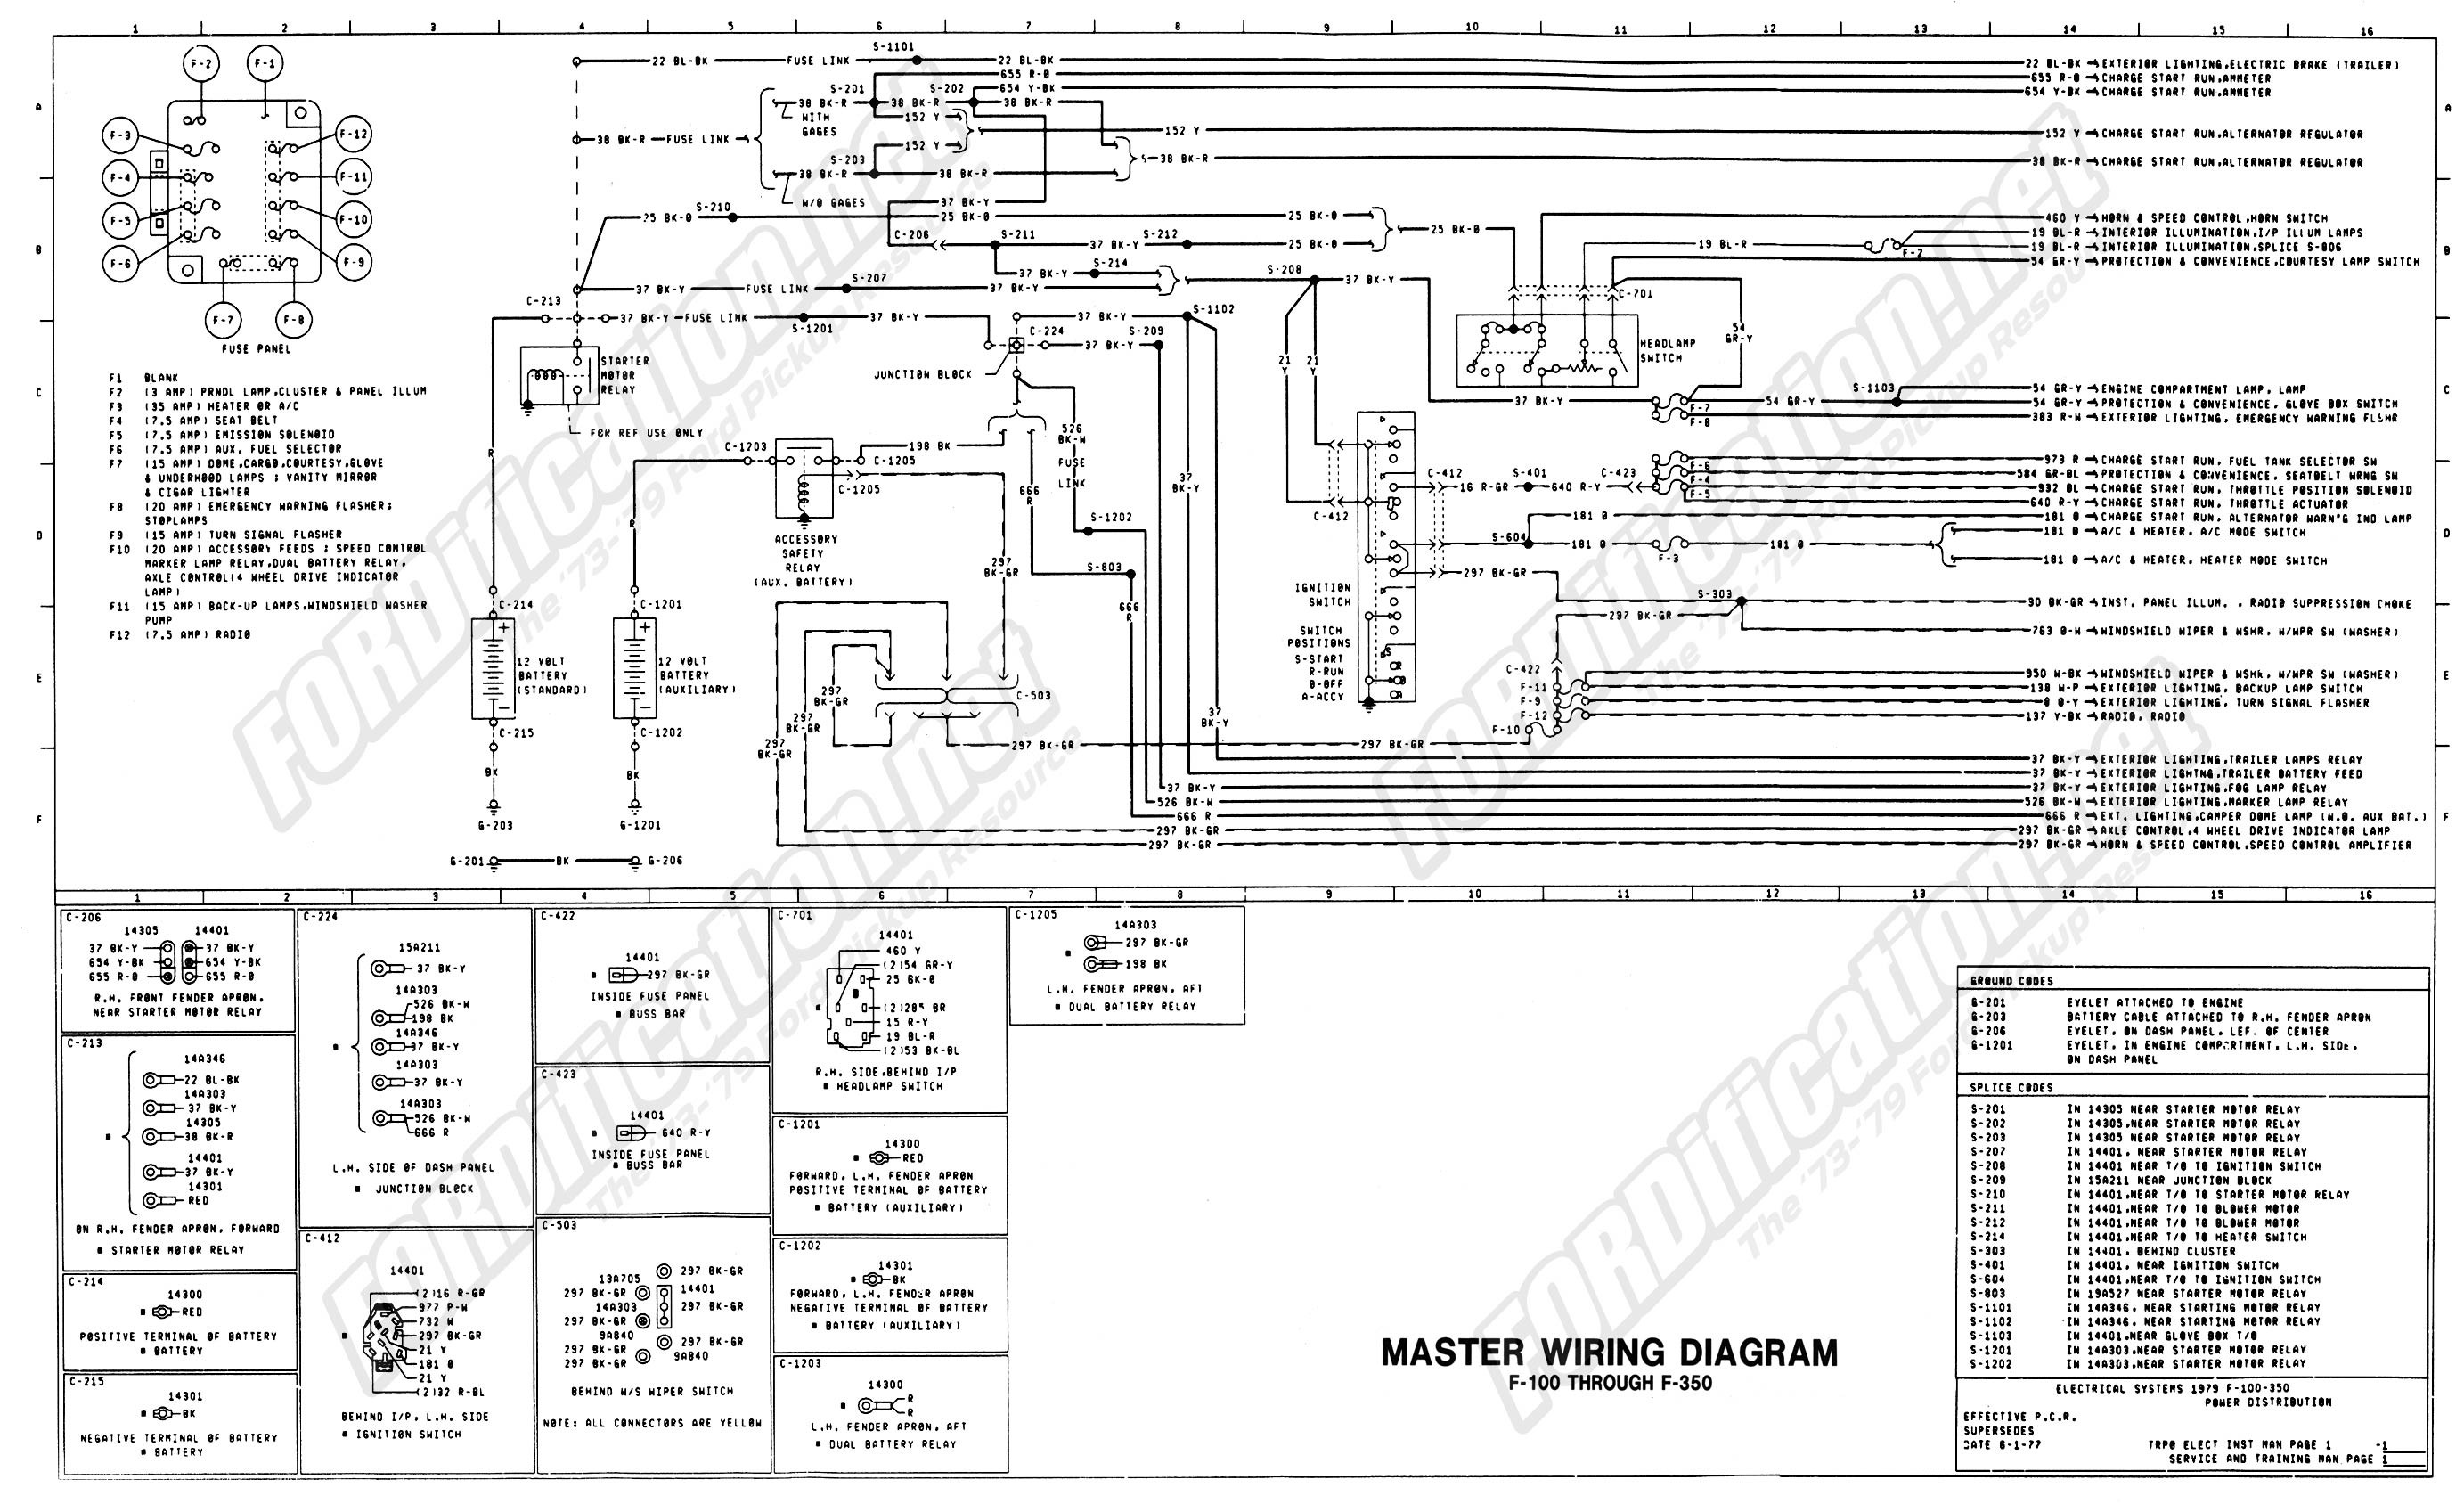 1986 ford F150 Engine Diagram 79 F150 solenoid Wiring Diagram ford Truck  Enthusiasts forums Of 1986